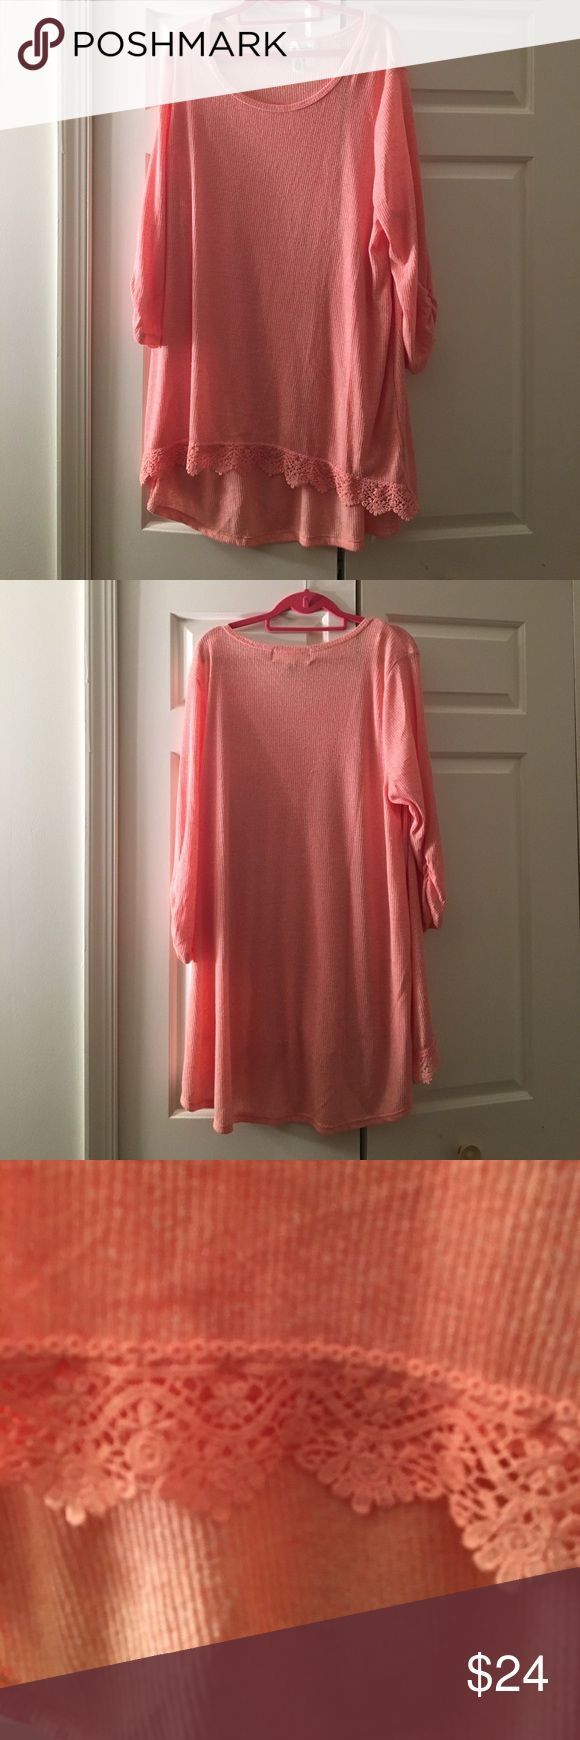 ✨MUST BUNDLE PRETTY PEACH TOP✨ NWT PLUS SIZE 2X Very nice color and long length Tops Tees - Long Sleeve